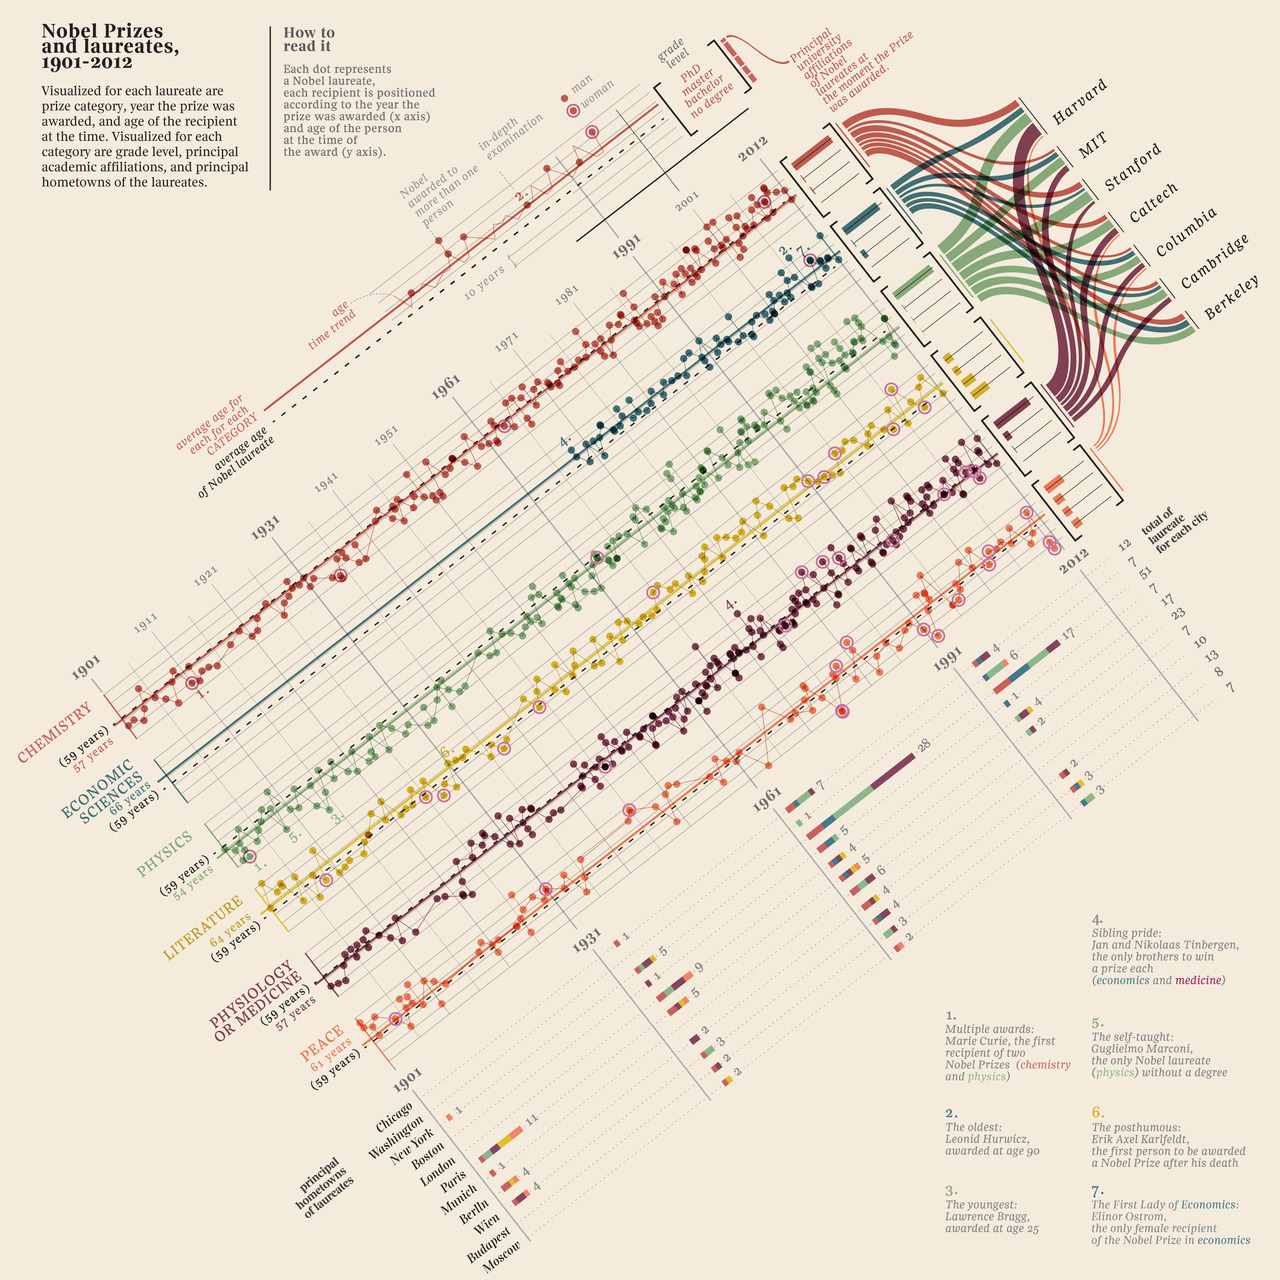 Nobel Prizes and laureates from 1901-2012 by Giorgia Lupi via Brain Pickings.